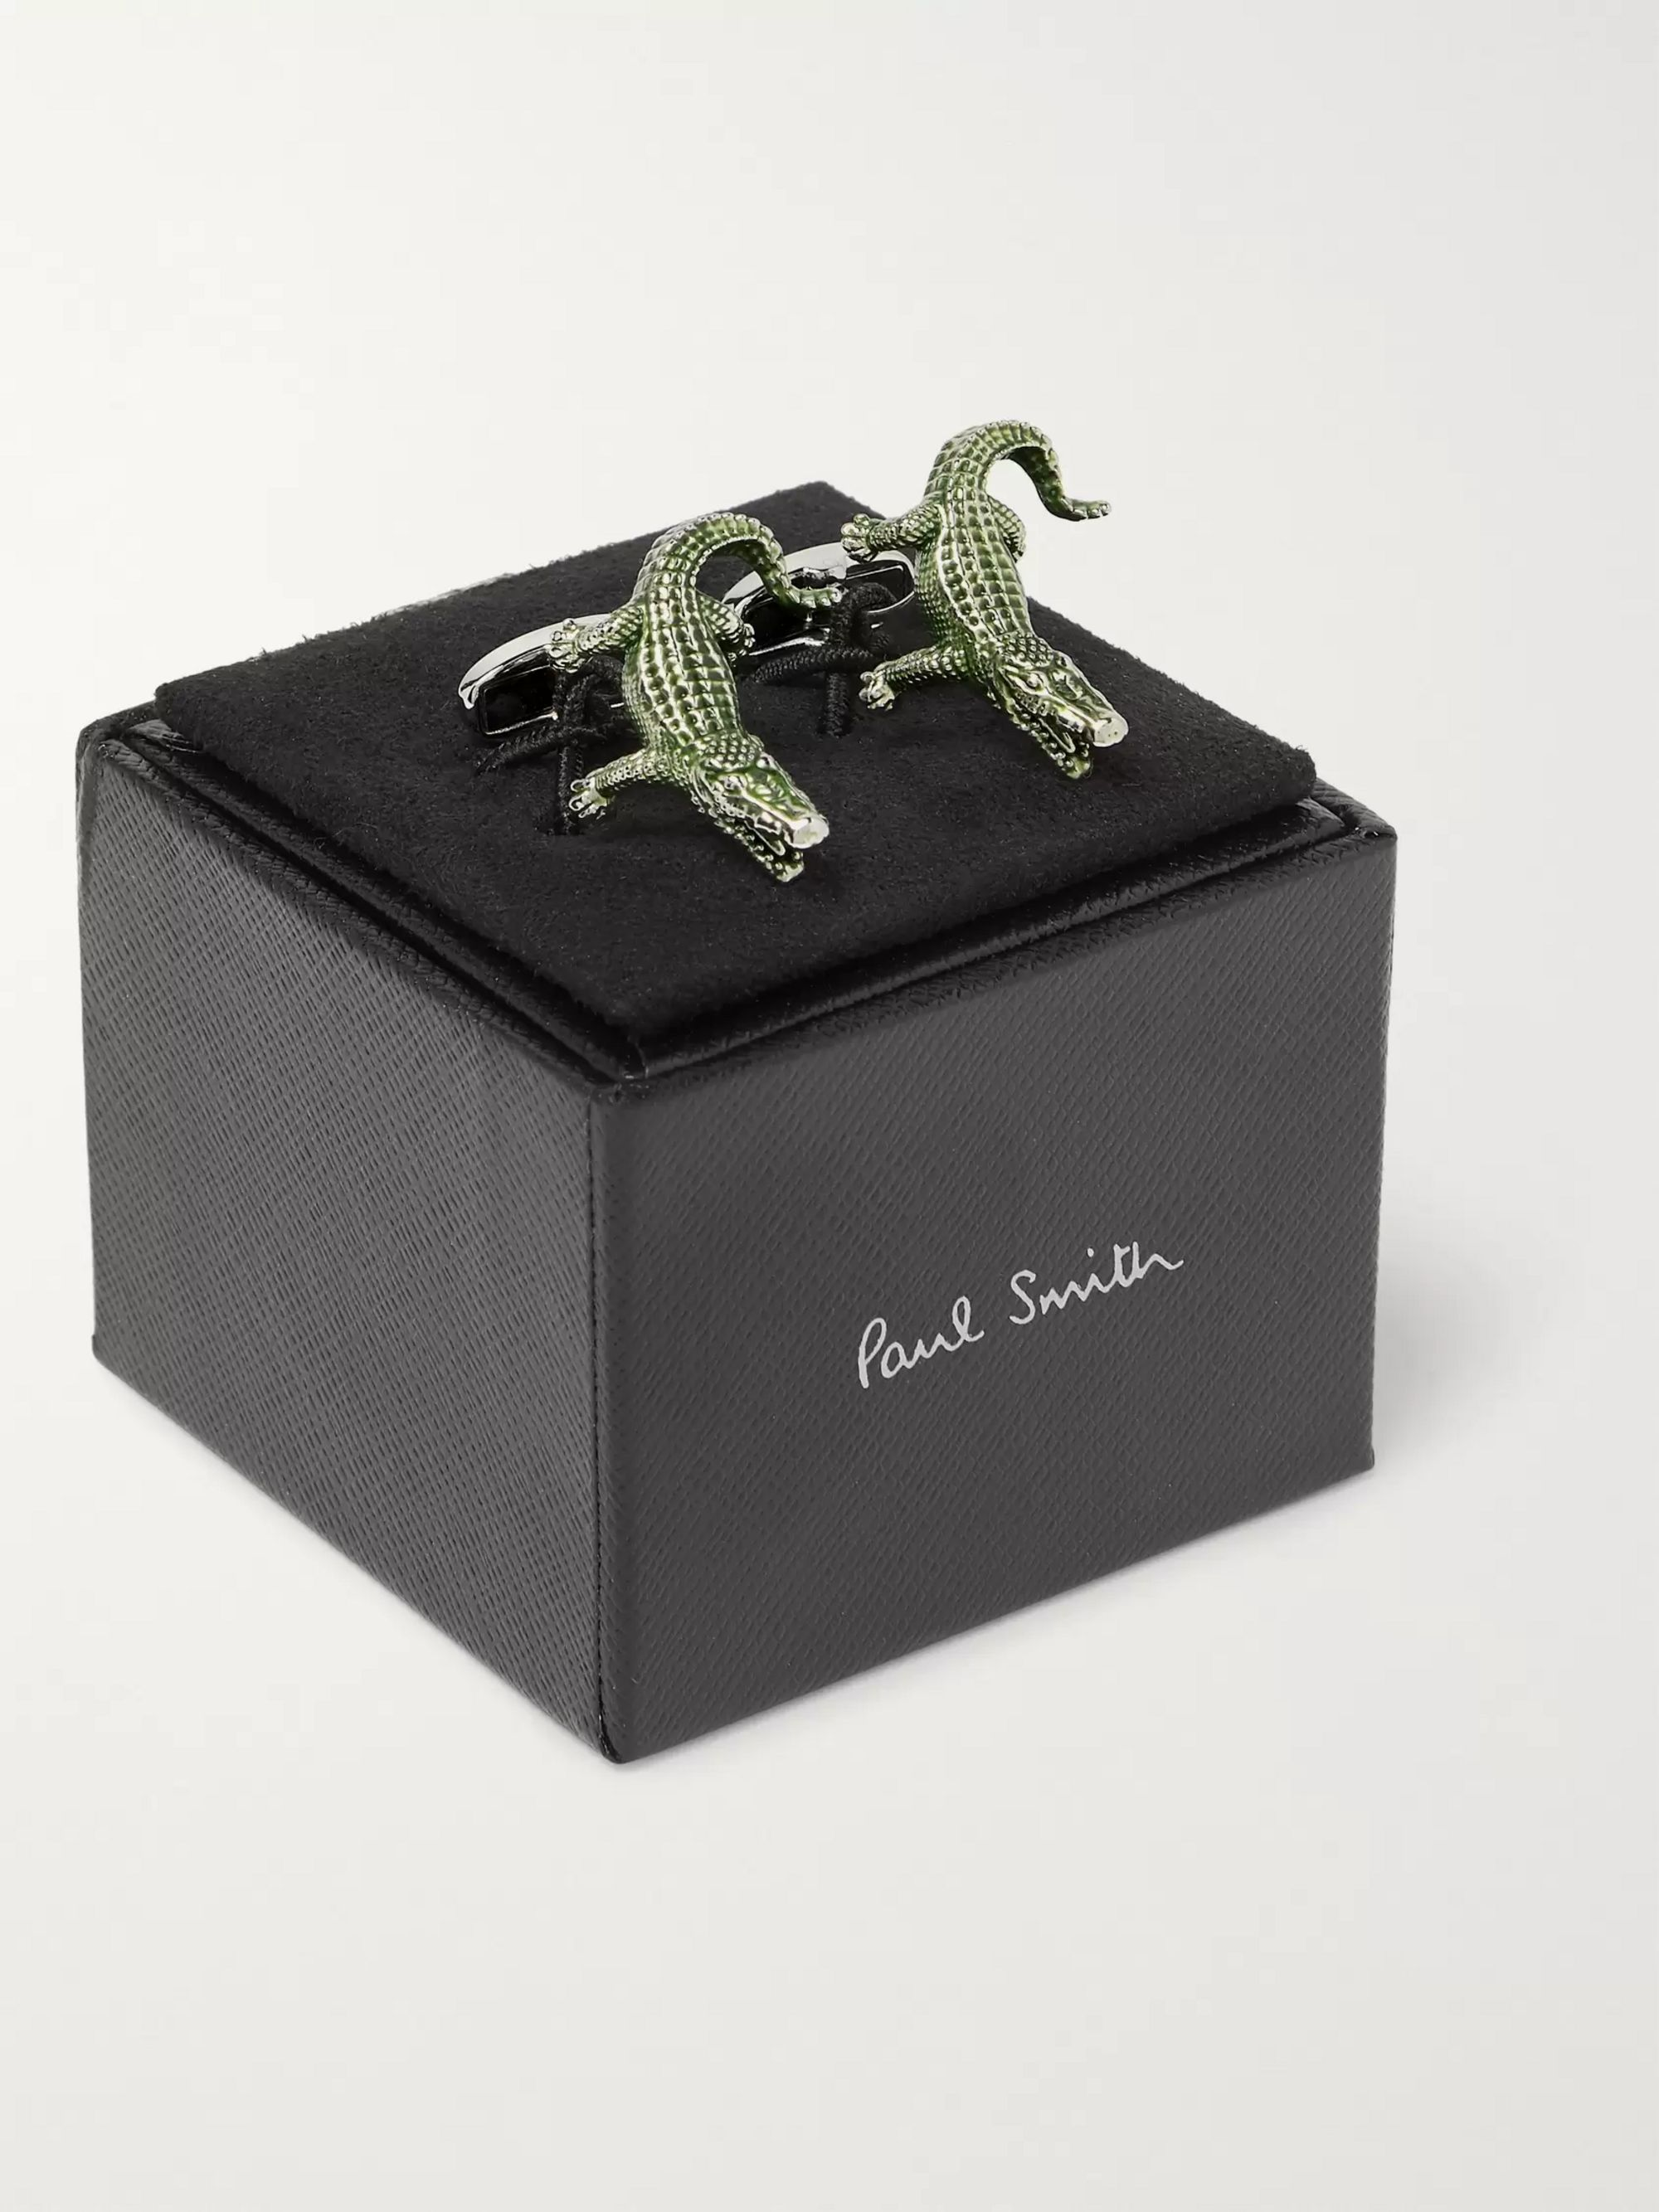 Paul Smith Silver-Tone and Enamel Cufflinks